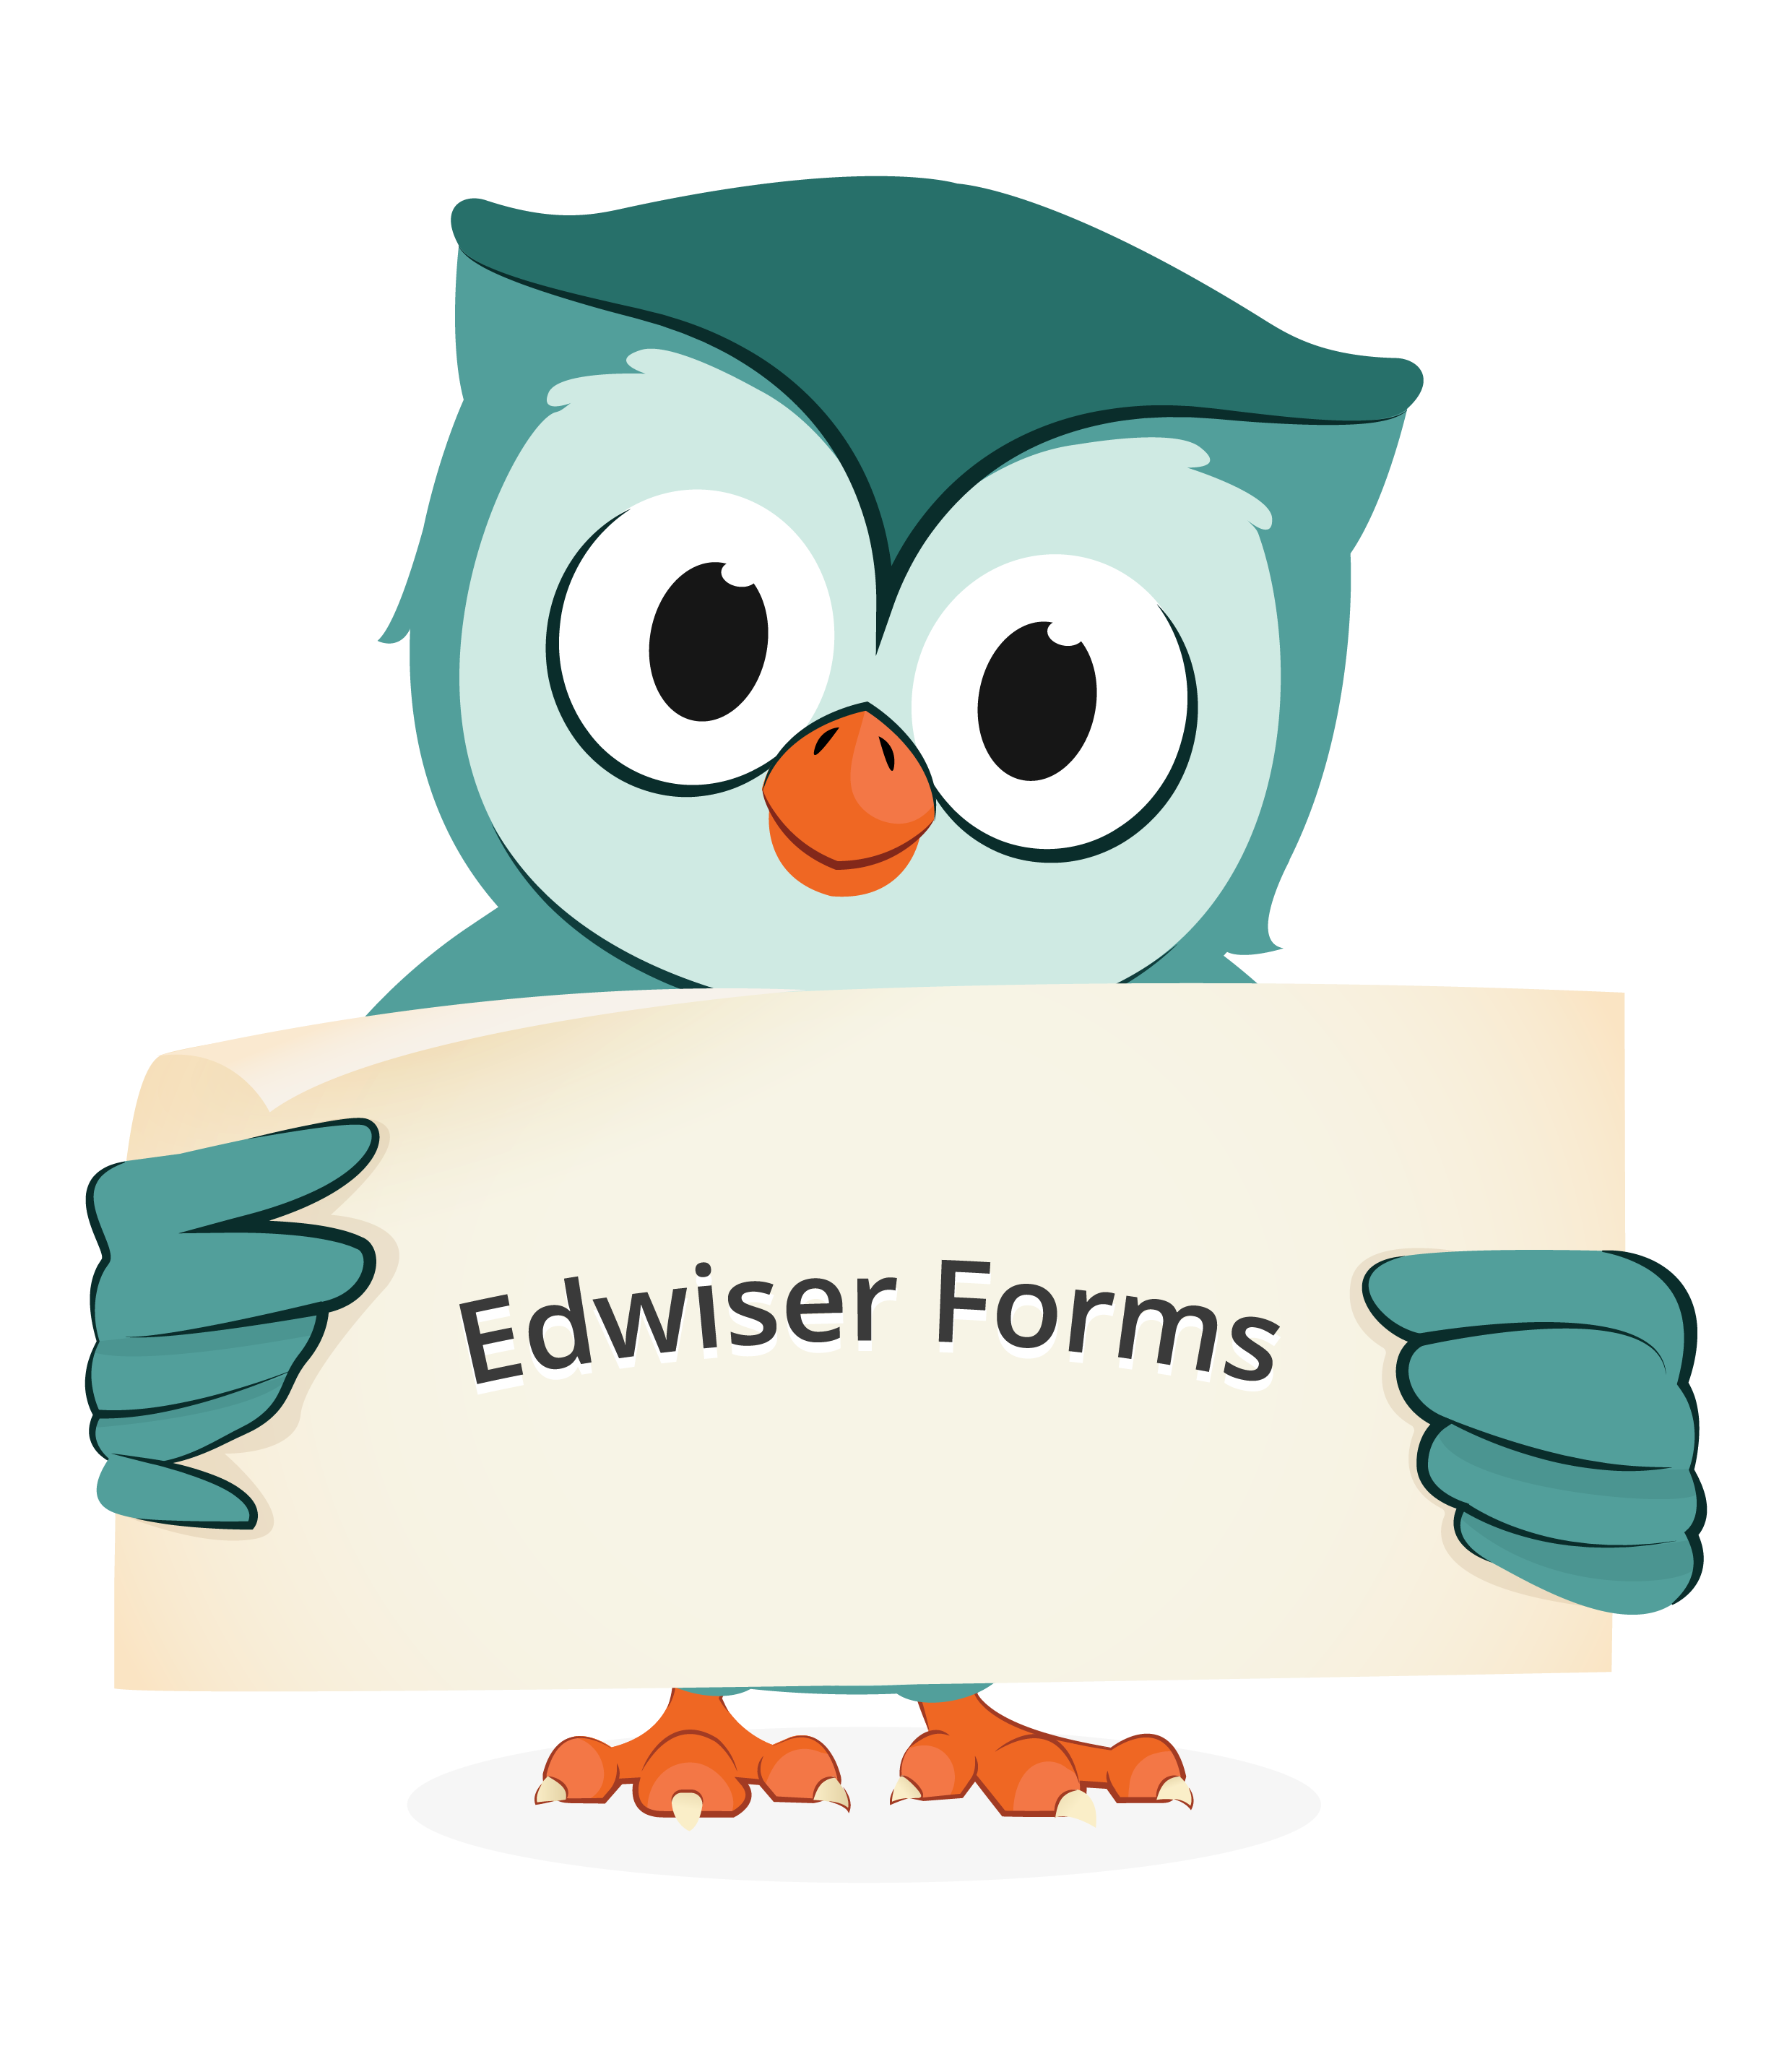 Edwiser Forms